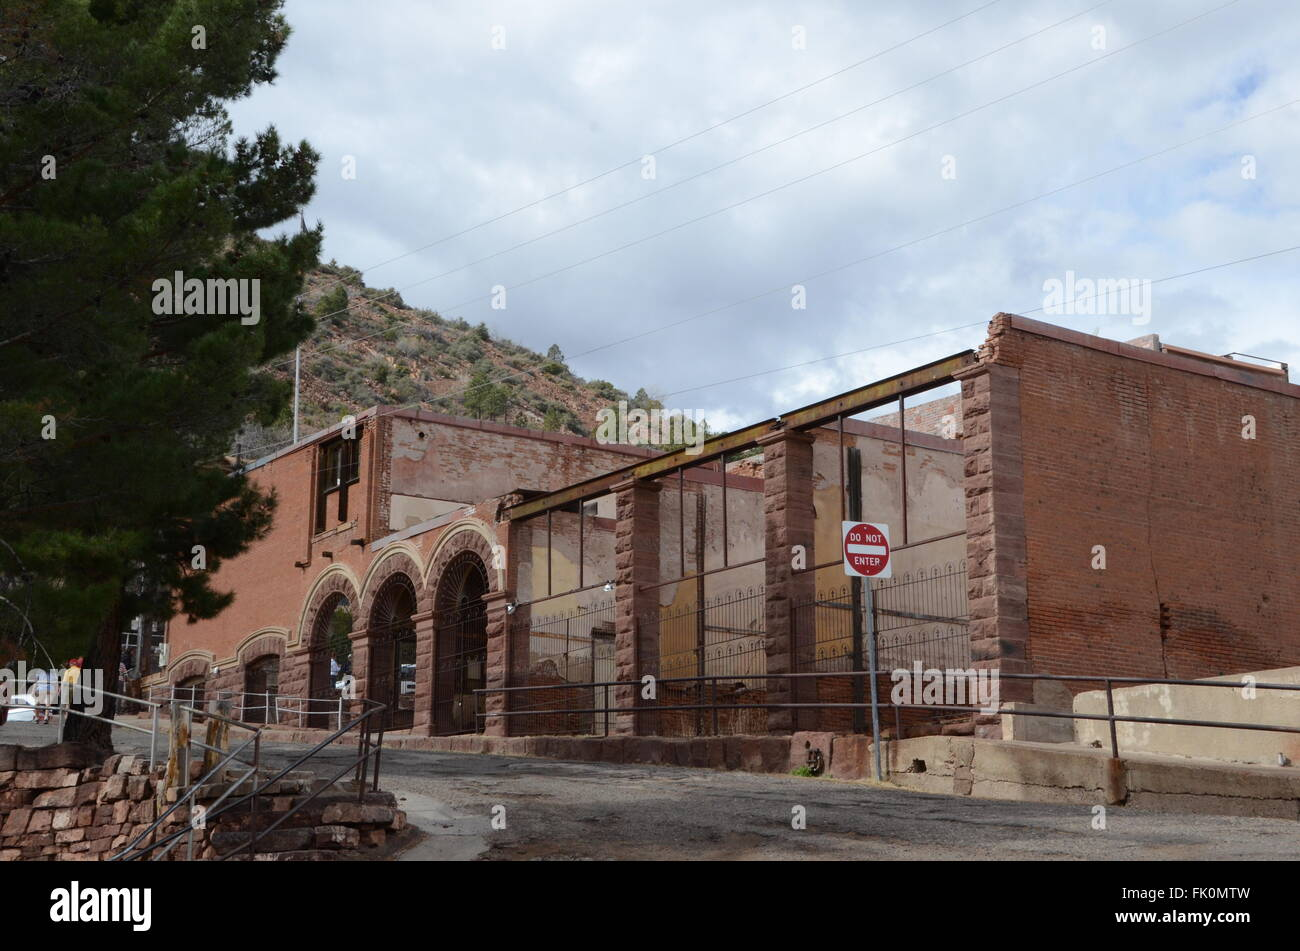 bartlett hotel jerome ghost town arizona - Stock Image